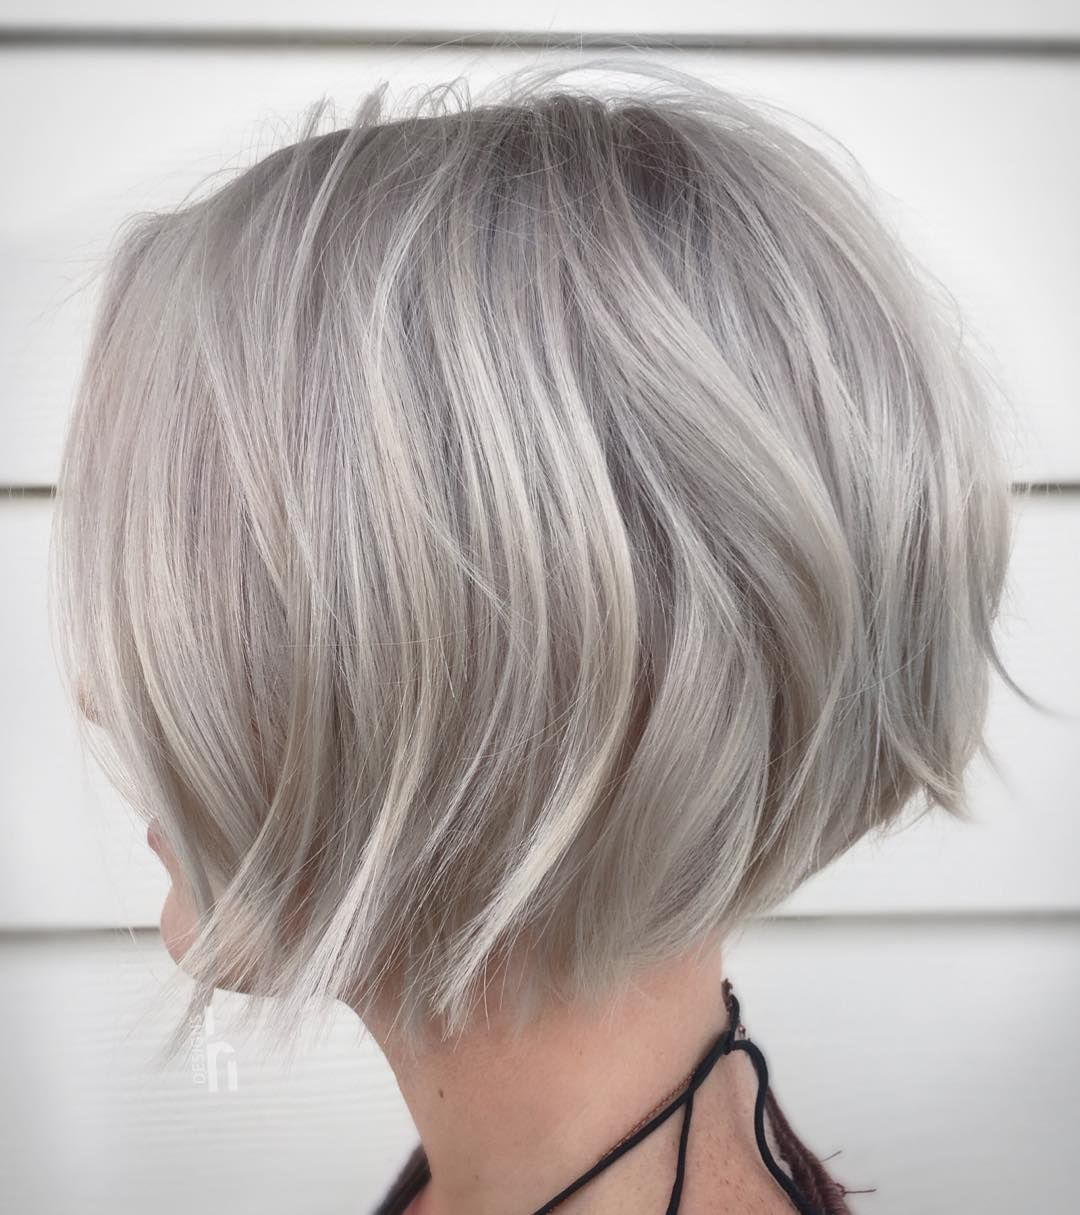 10 stylish medium bob haircuts for women - easy-care chic